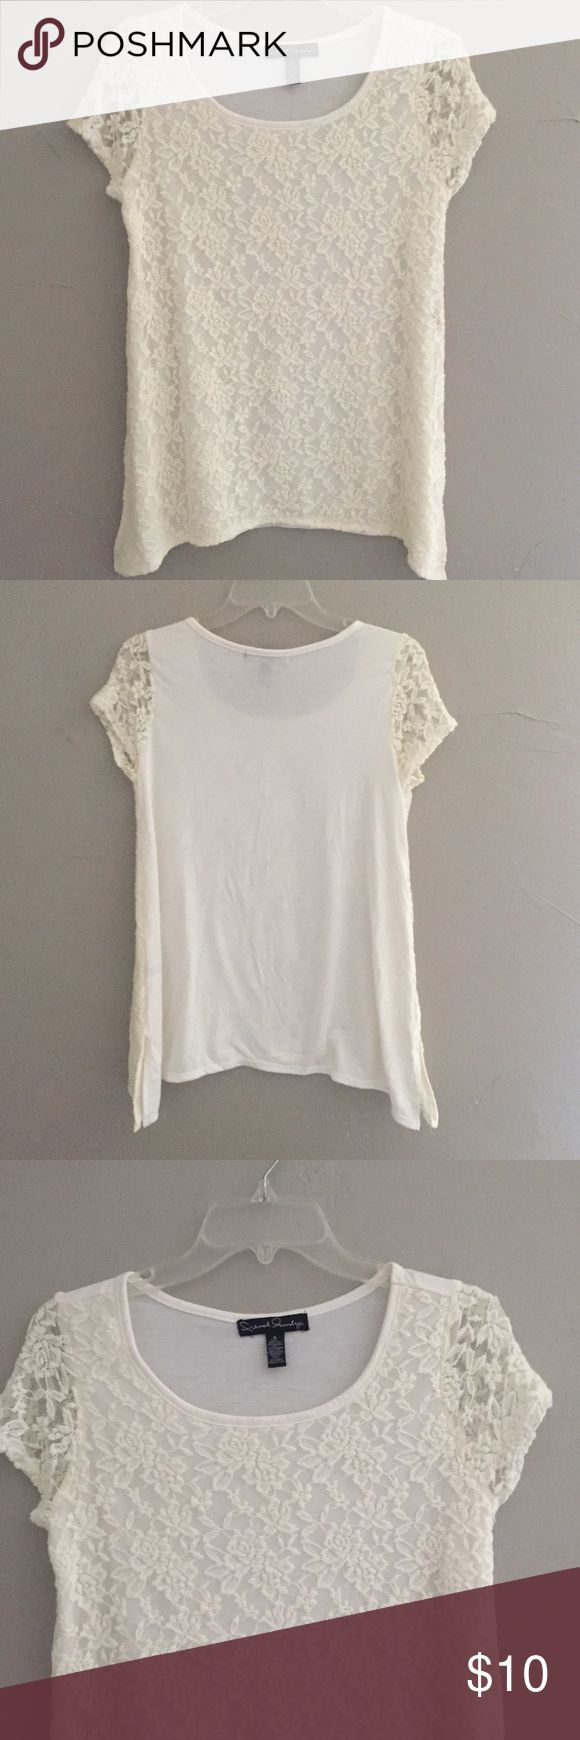 Cream Lace Short Sleeve Top Cute and flattering French Laundry lace top. Longer on the sides with small slits. Worn a couple times. Excellent condition. No flaws. French Laundry Tops